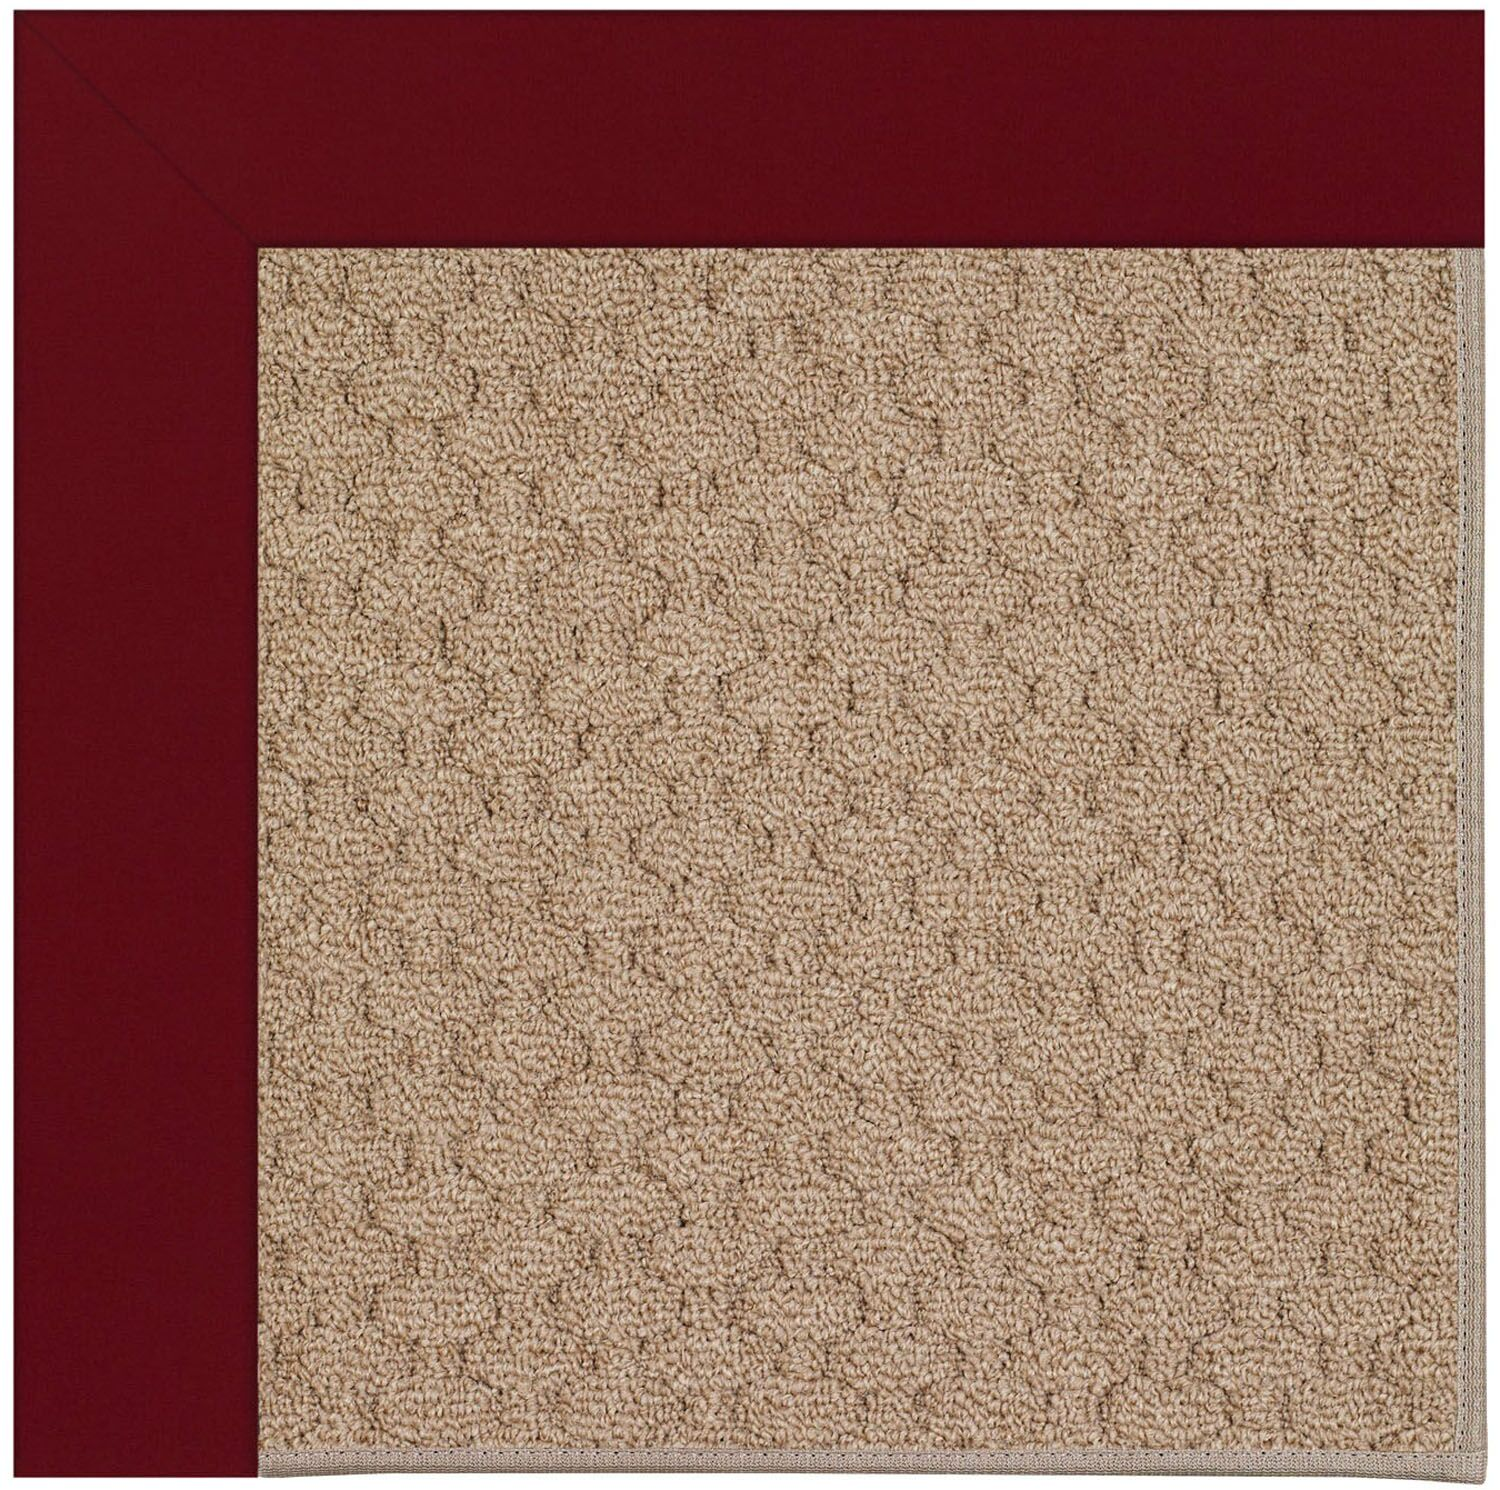 Lisle Machine Tufted Wine/Brown Indoor/Outdoor Area Rug Rug Size: Rectangle 7' x 9'